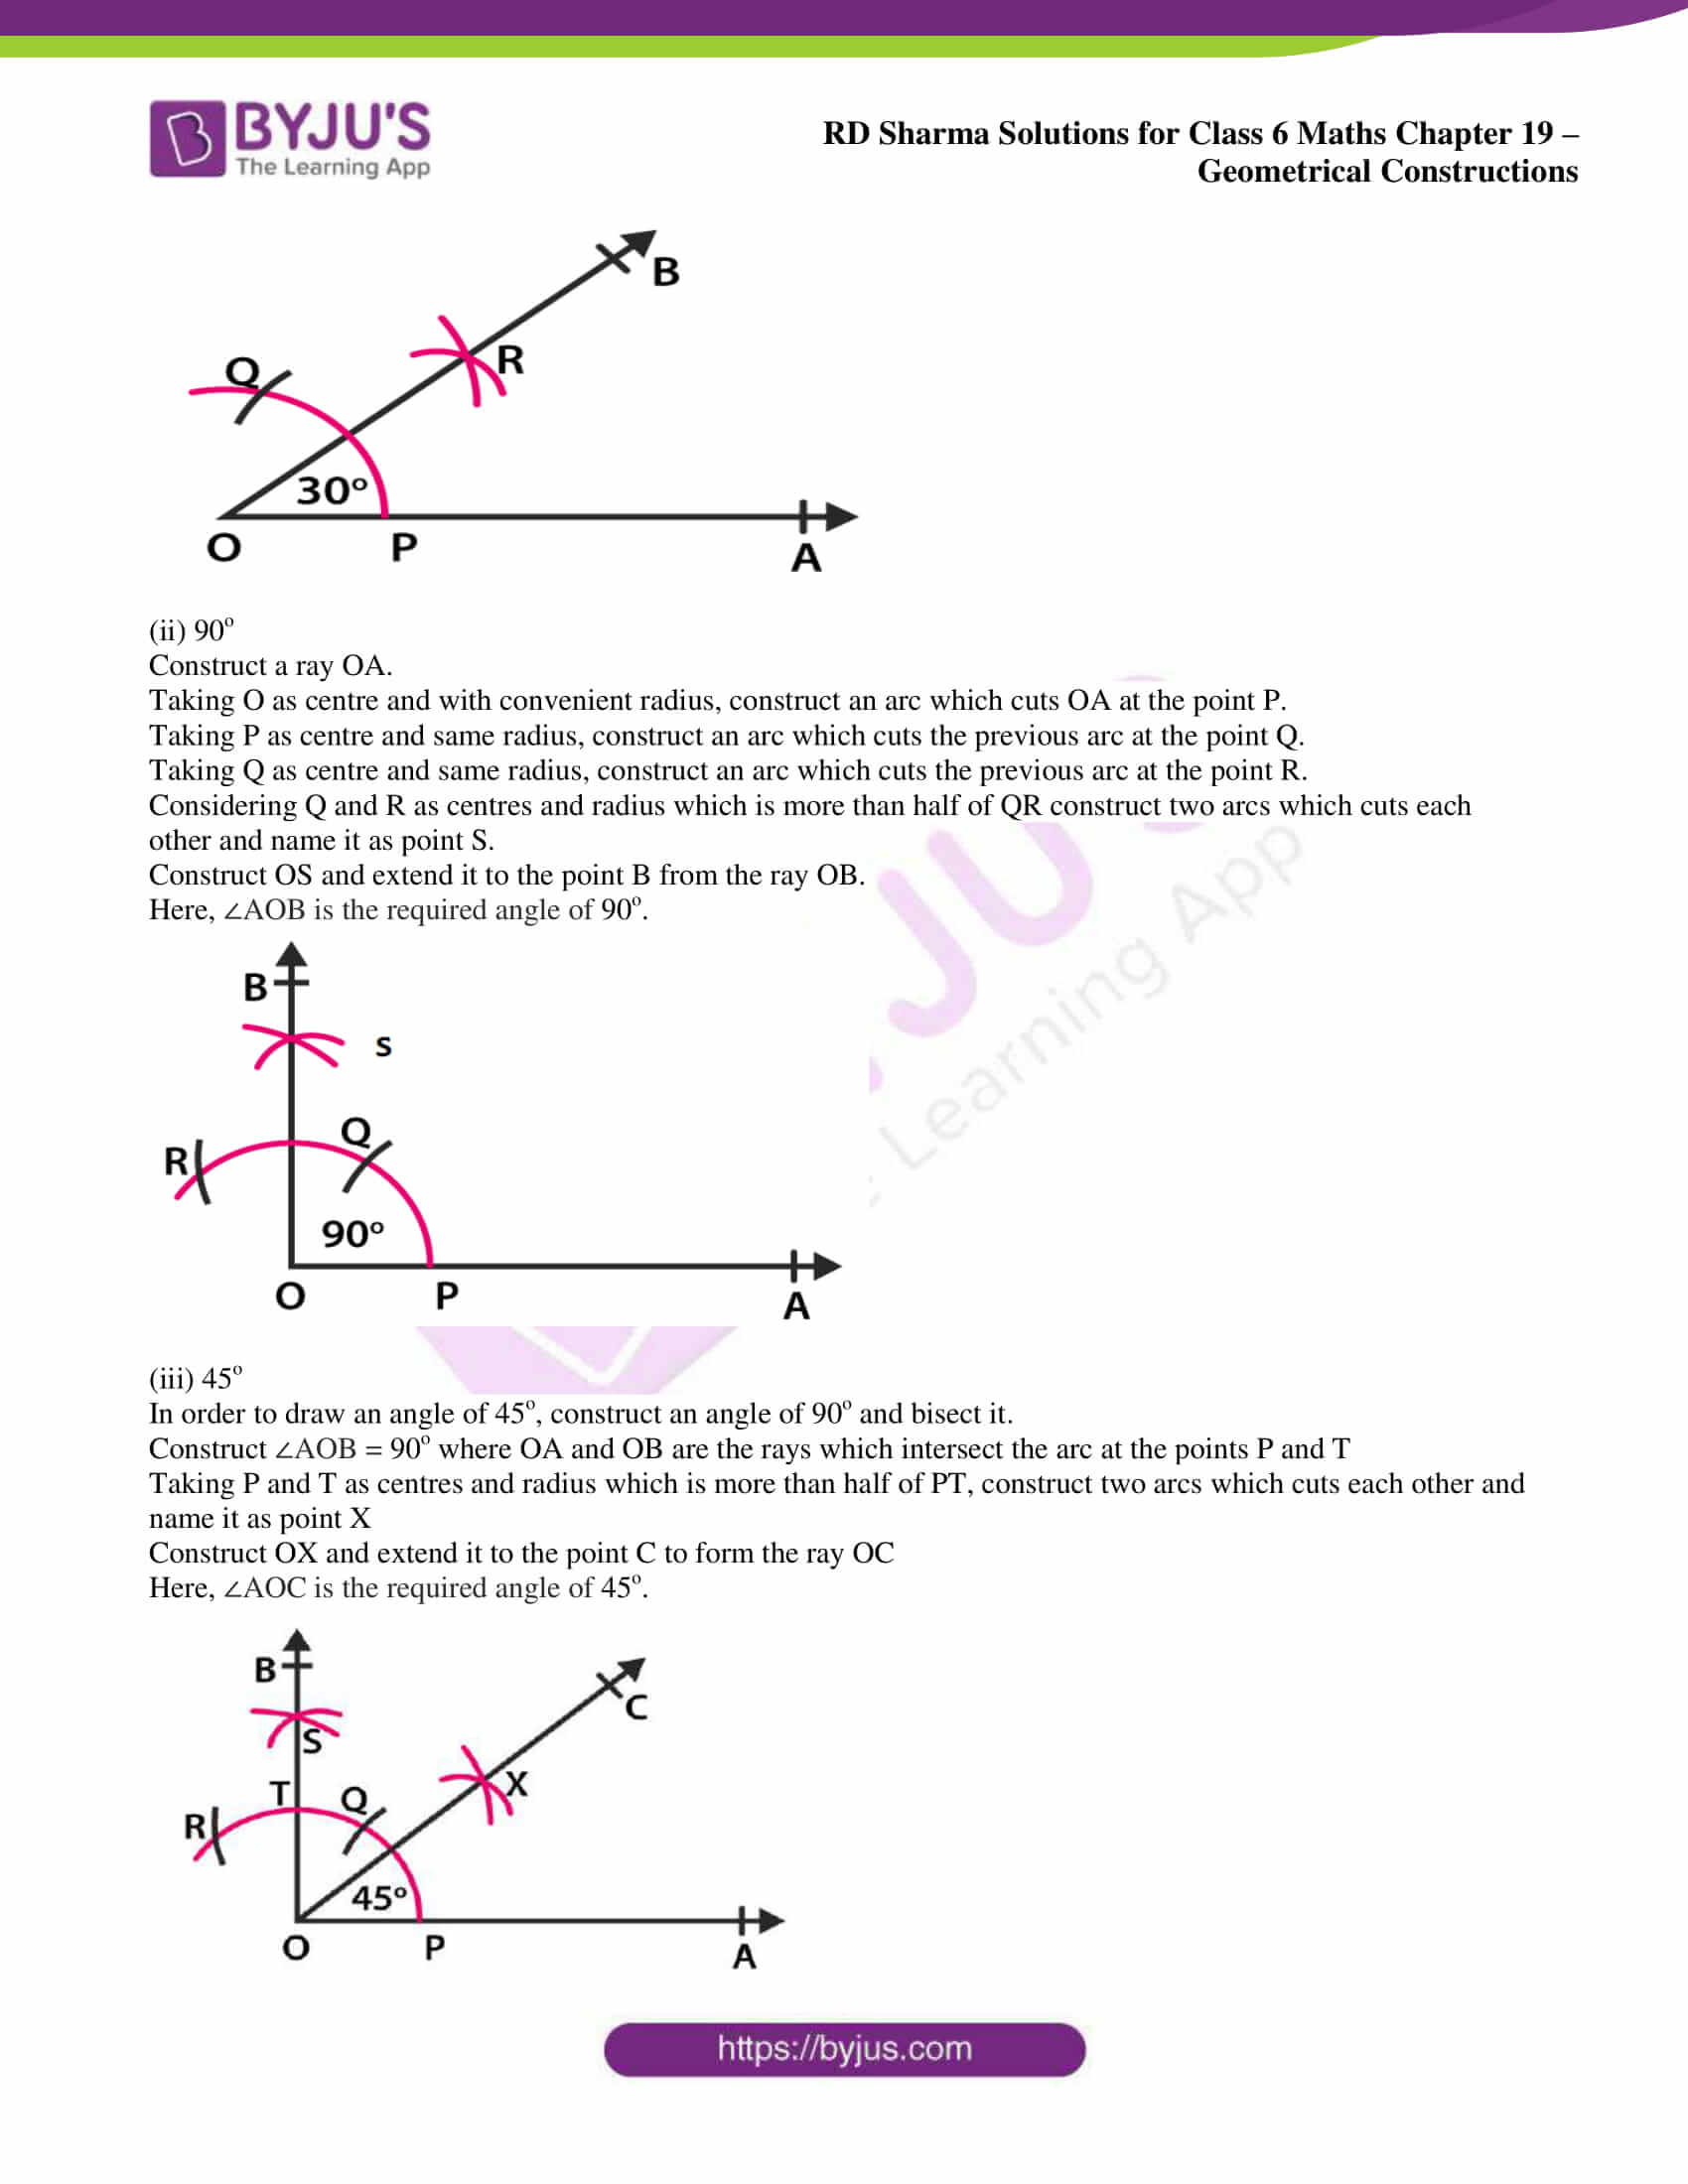 rd sharma solutions nov2020 class 6 maths chapter 19 exercise 6 2